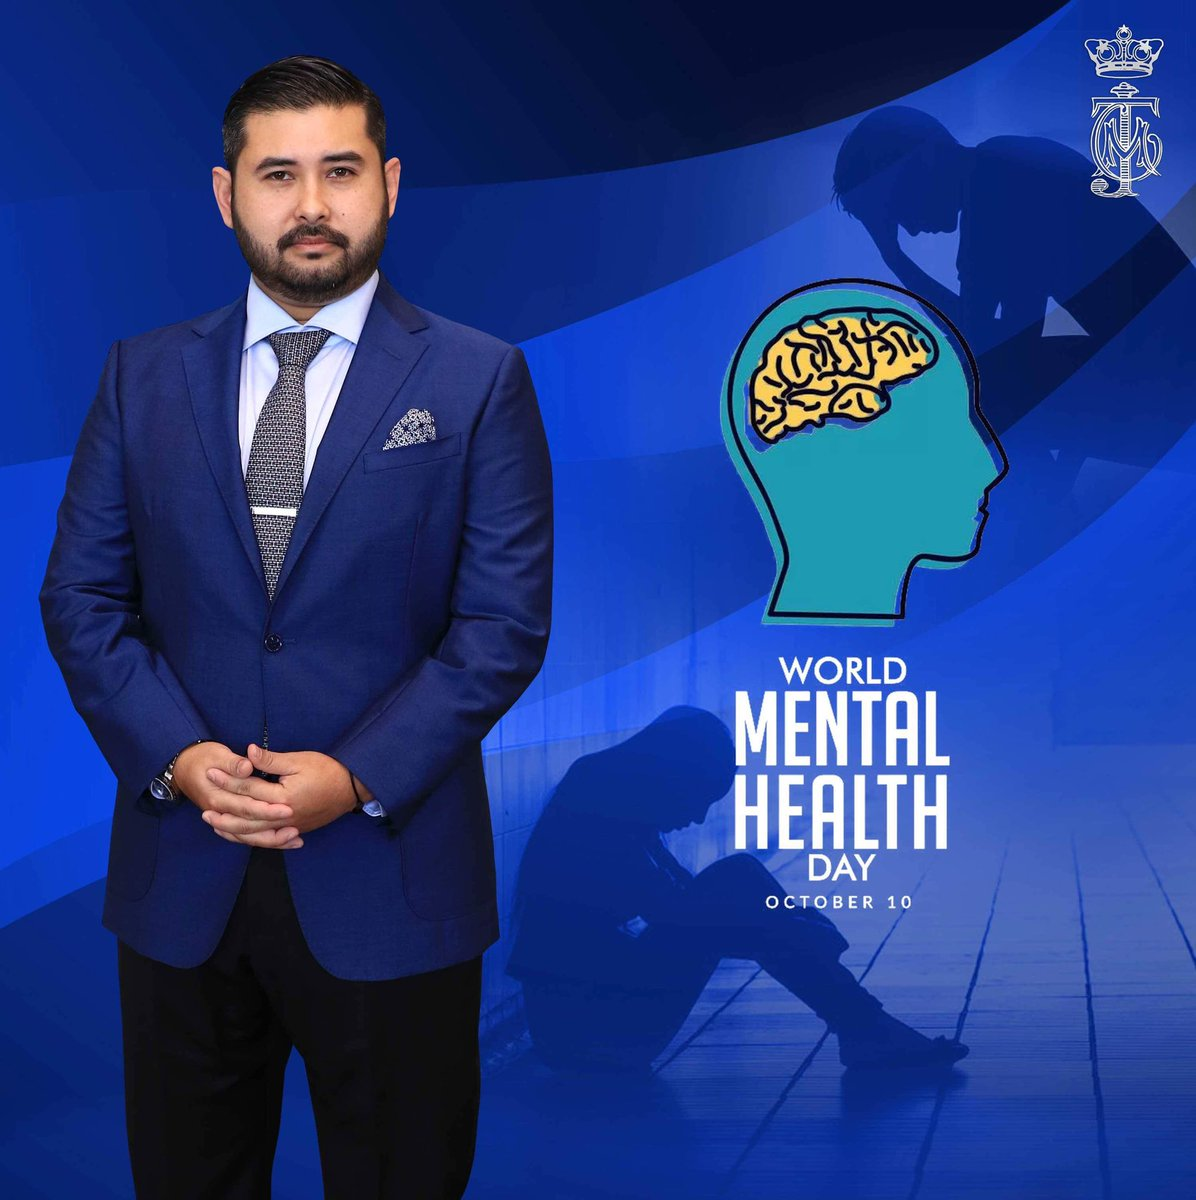 World Mental Health Day 10 Oct 2018  In conjunction with the World Mental Health Day on 10th October, I would like to stress on the importance of mental health.  (1/6) <br>http://pic.twitter.com/IIg0gcELqz